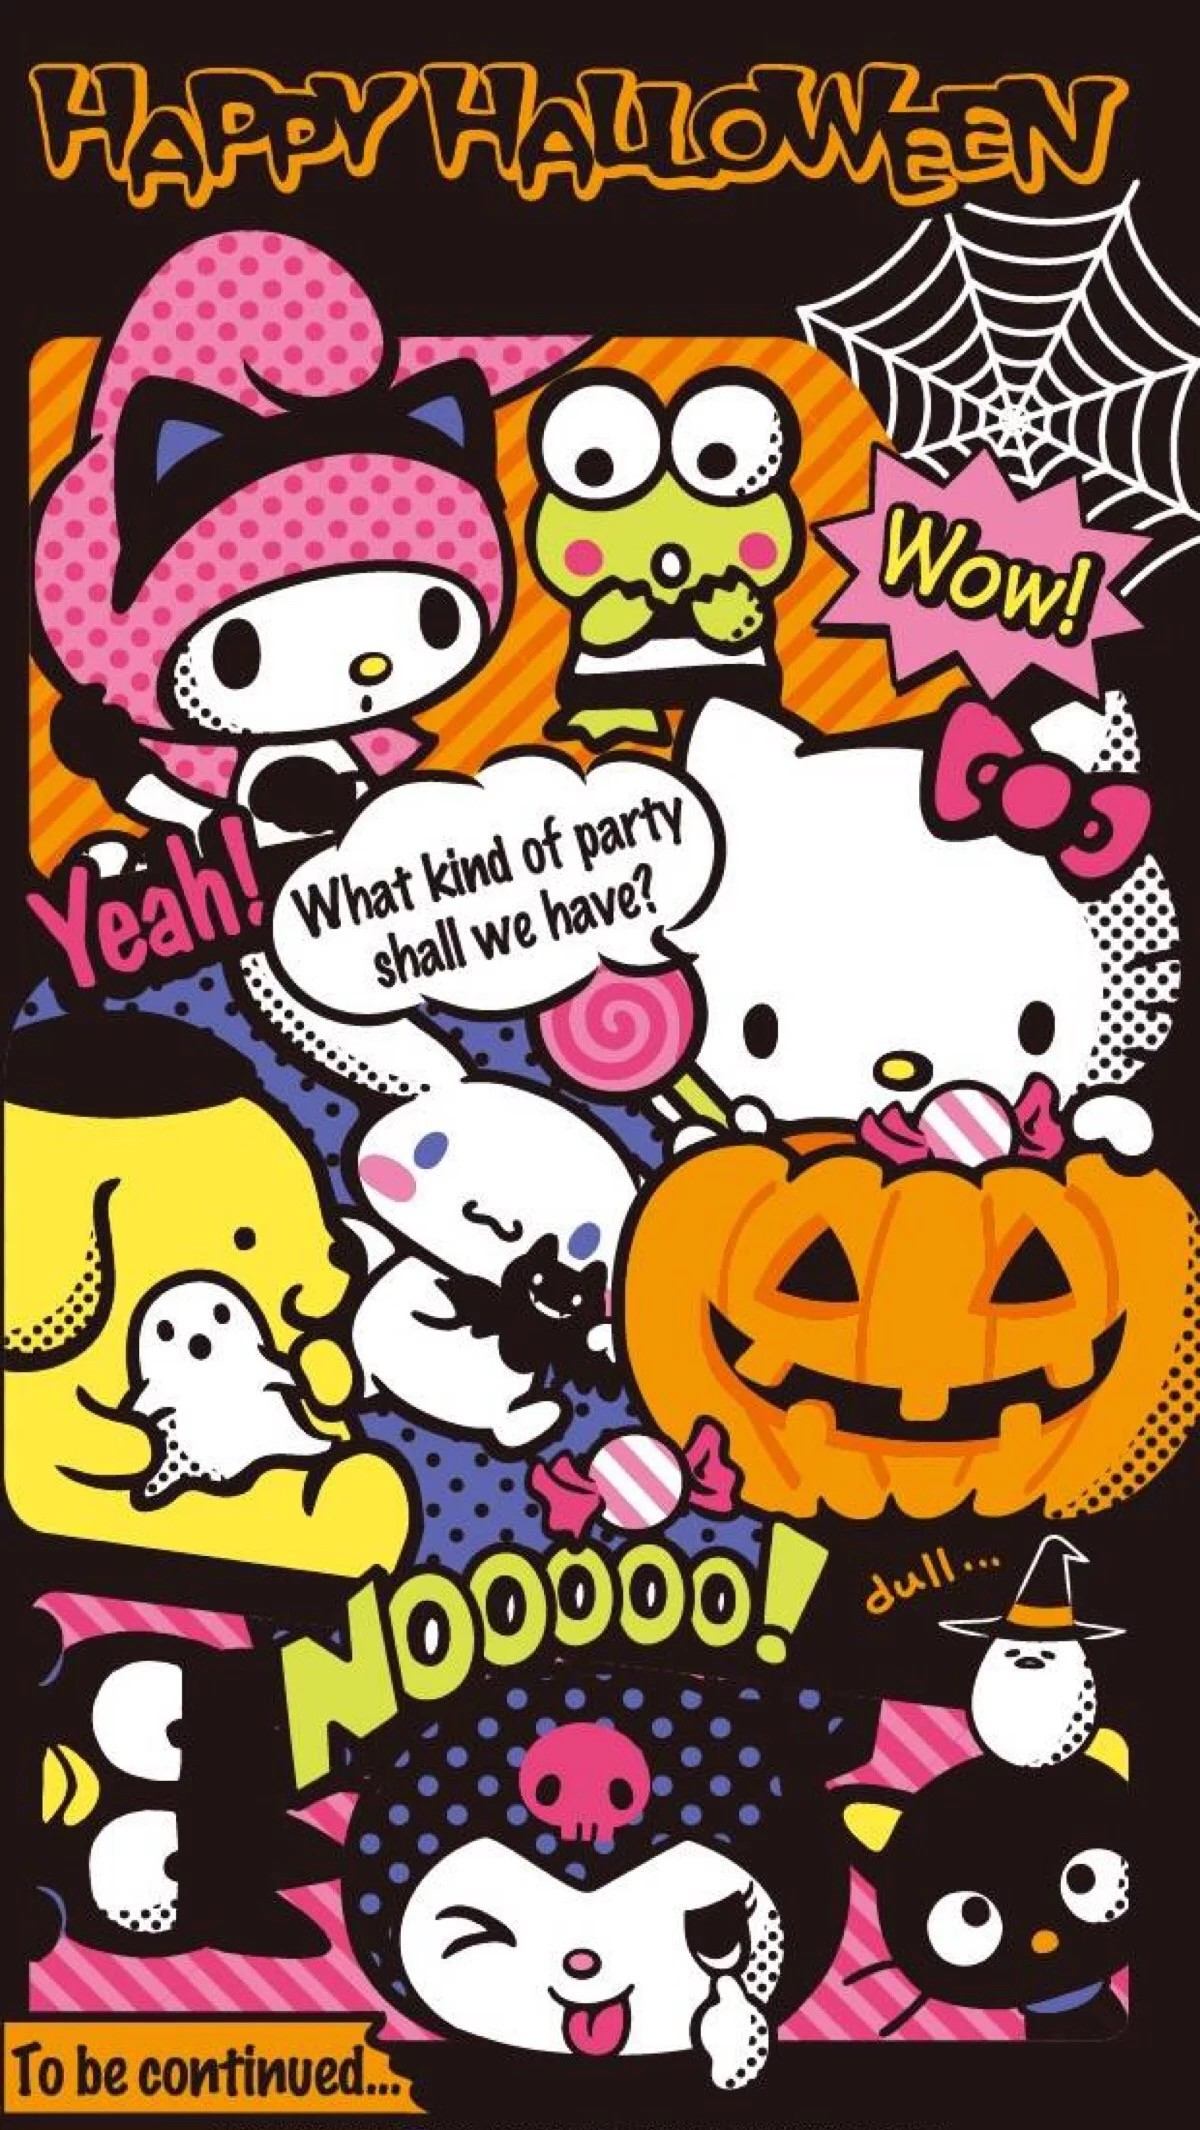 Amazing Wallpaper Hello Kitty Halloween - 976901-hello-kitty-halloween-wallpaper-1200x2130-for-macbook  You Should Have_608434.jpg